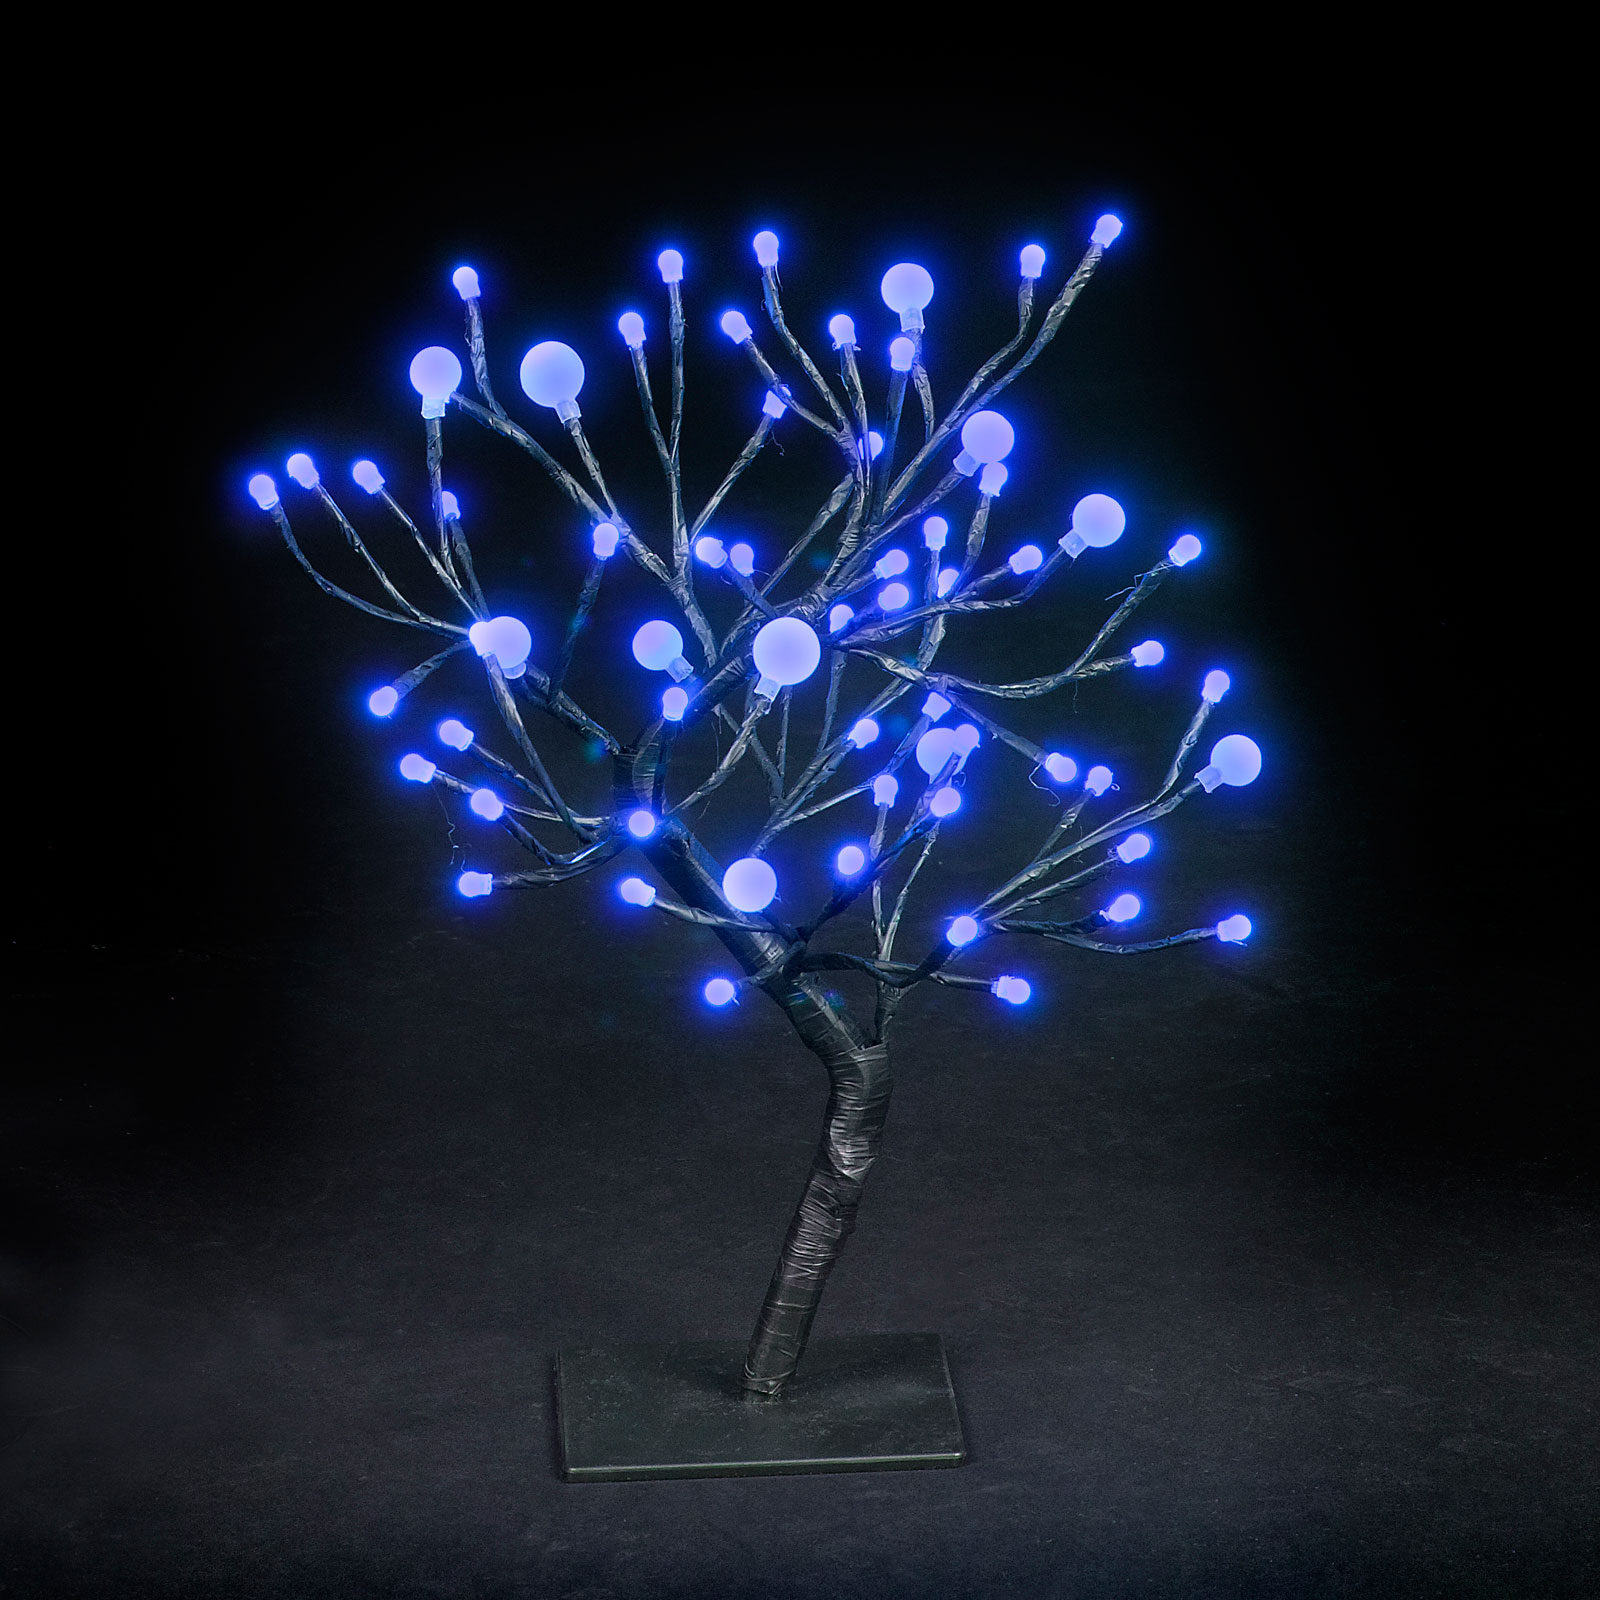 18in/45cm Dual Size Globe Tree with 64 Electric Blue LEDs